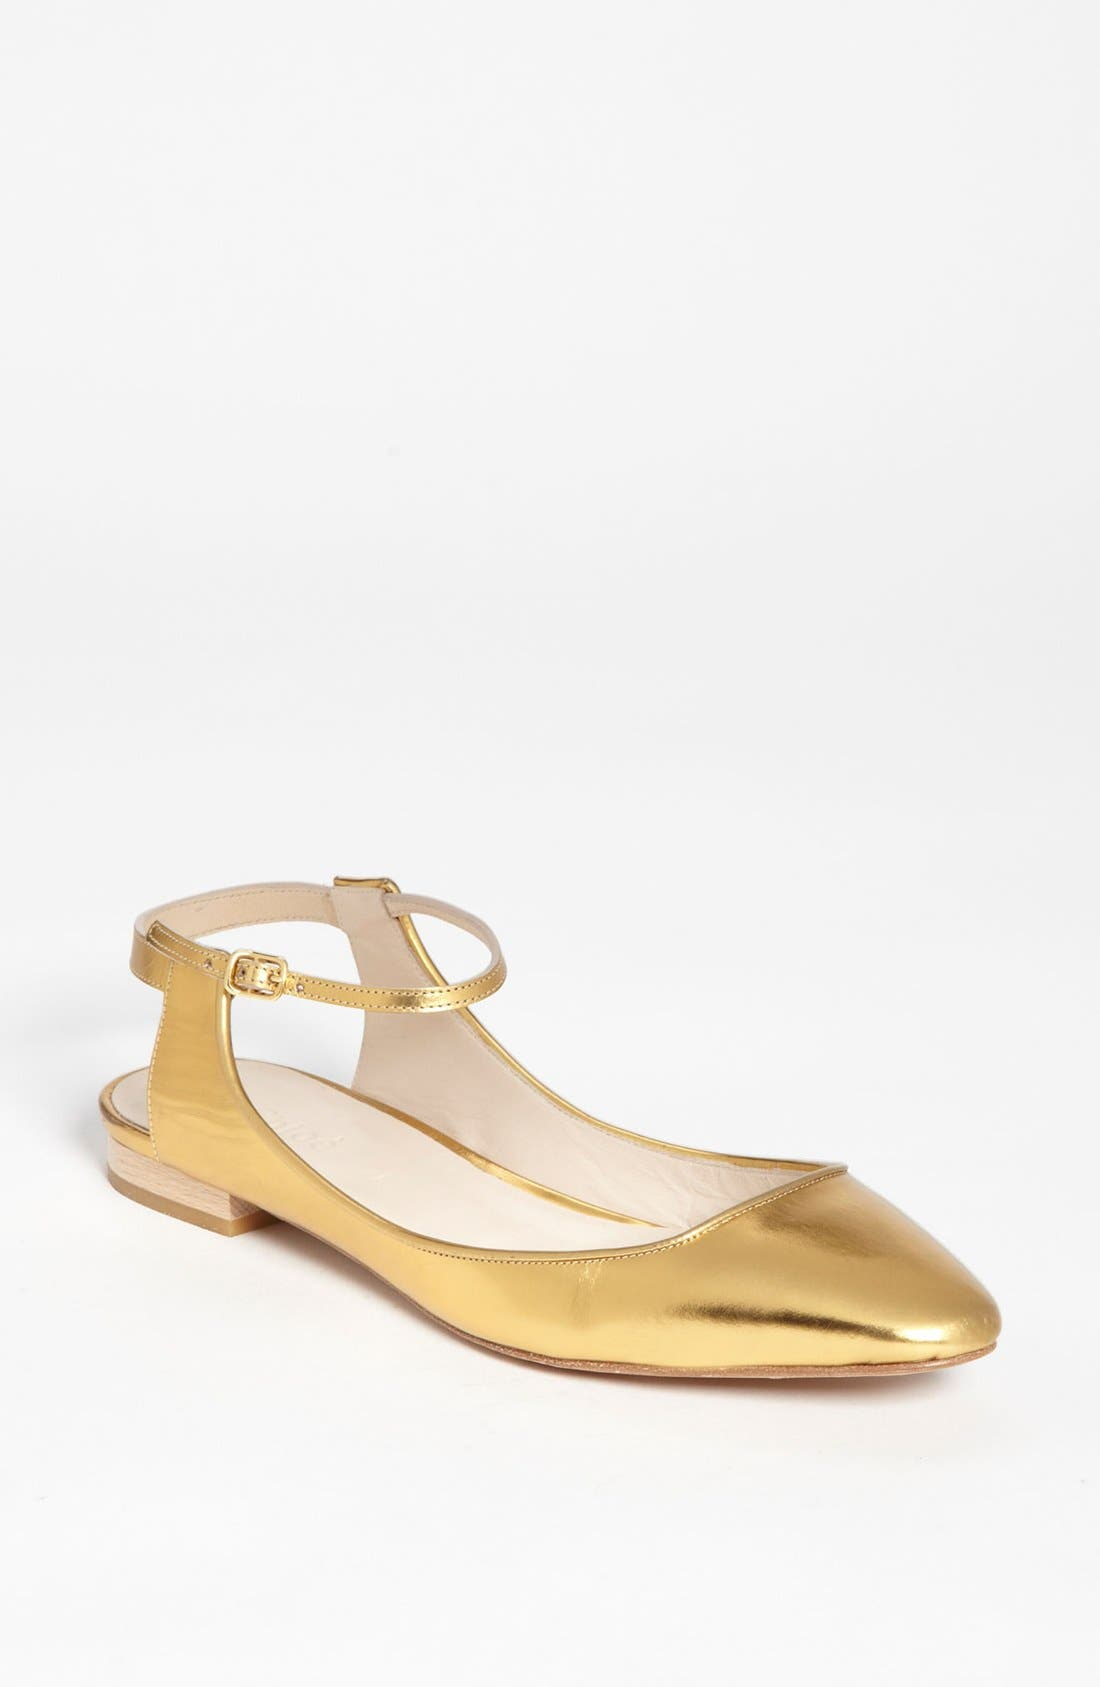 Alternate Image 1 Selected - Chloé Ankle Strap Flat